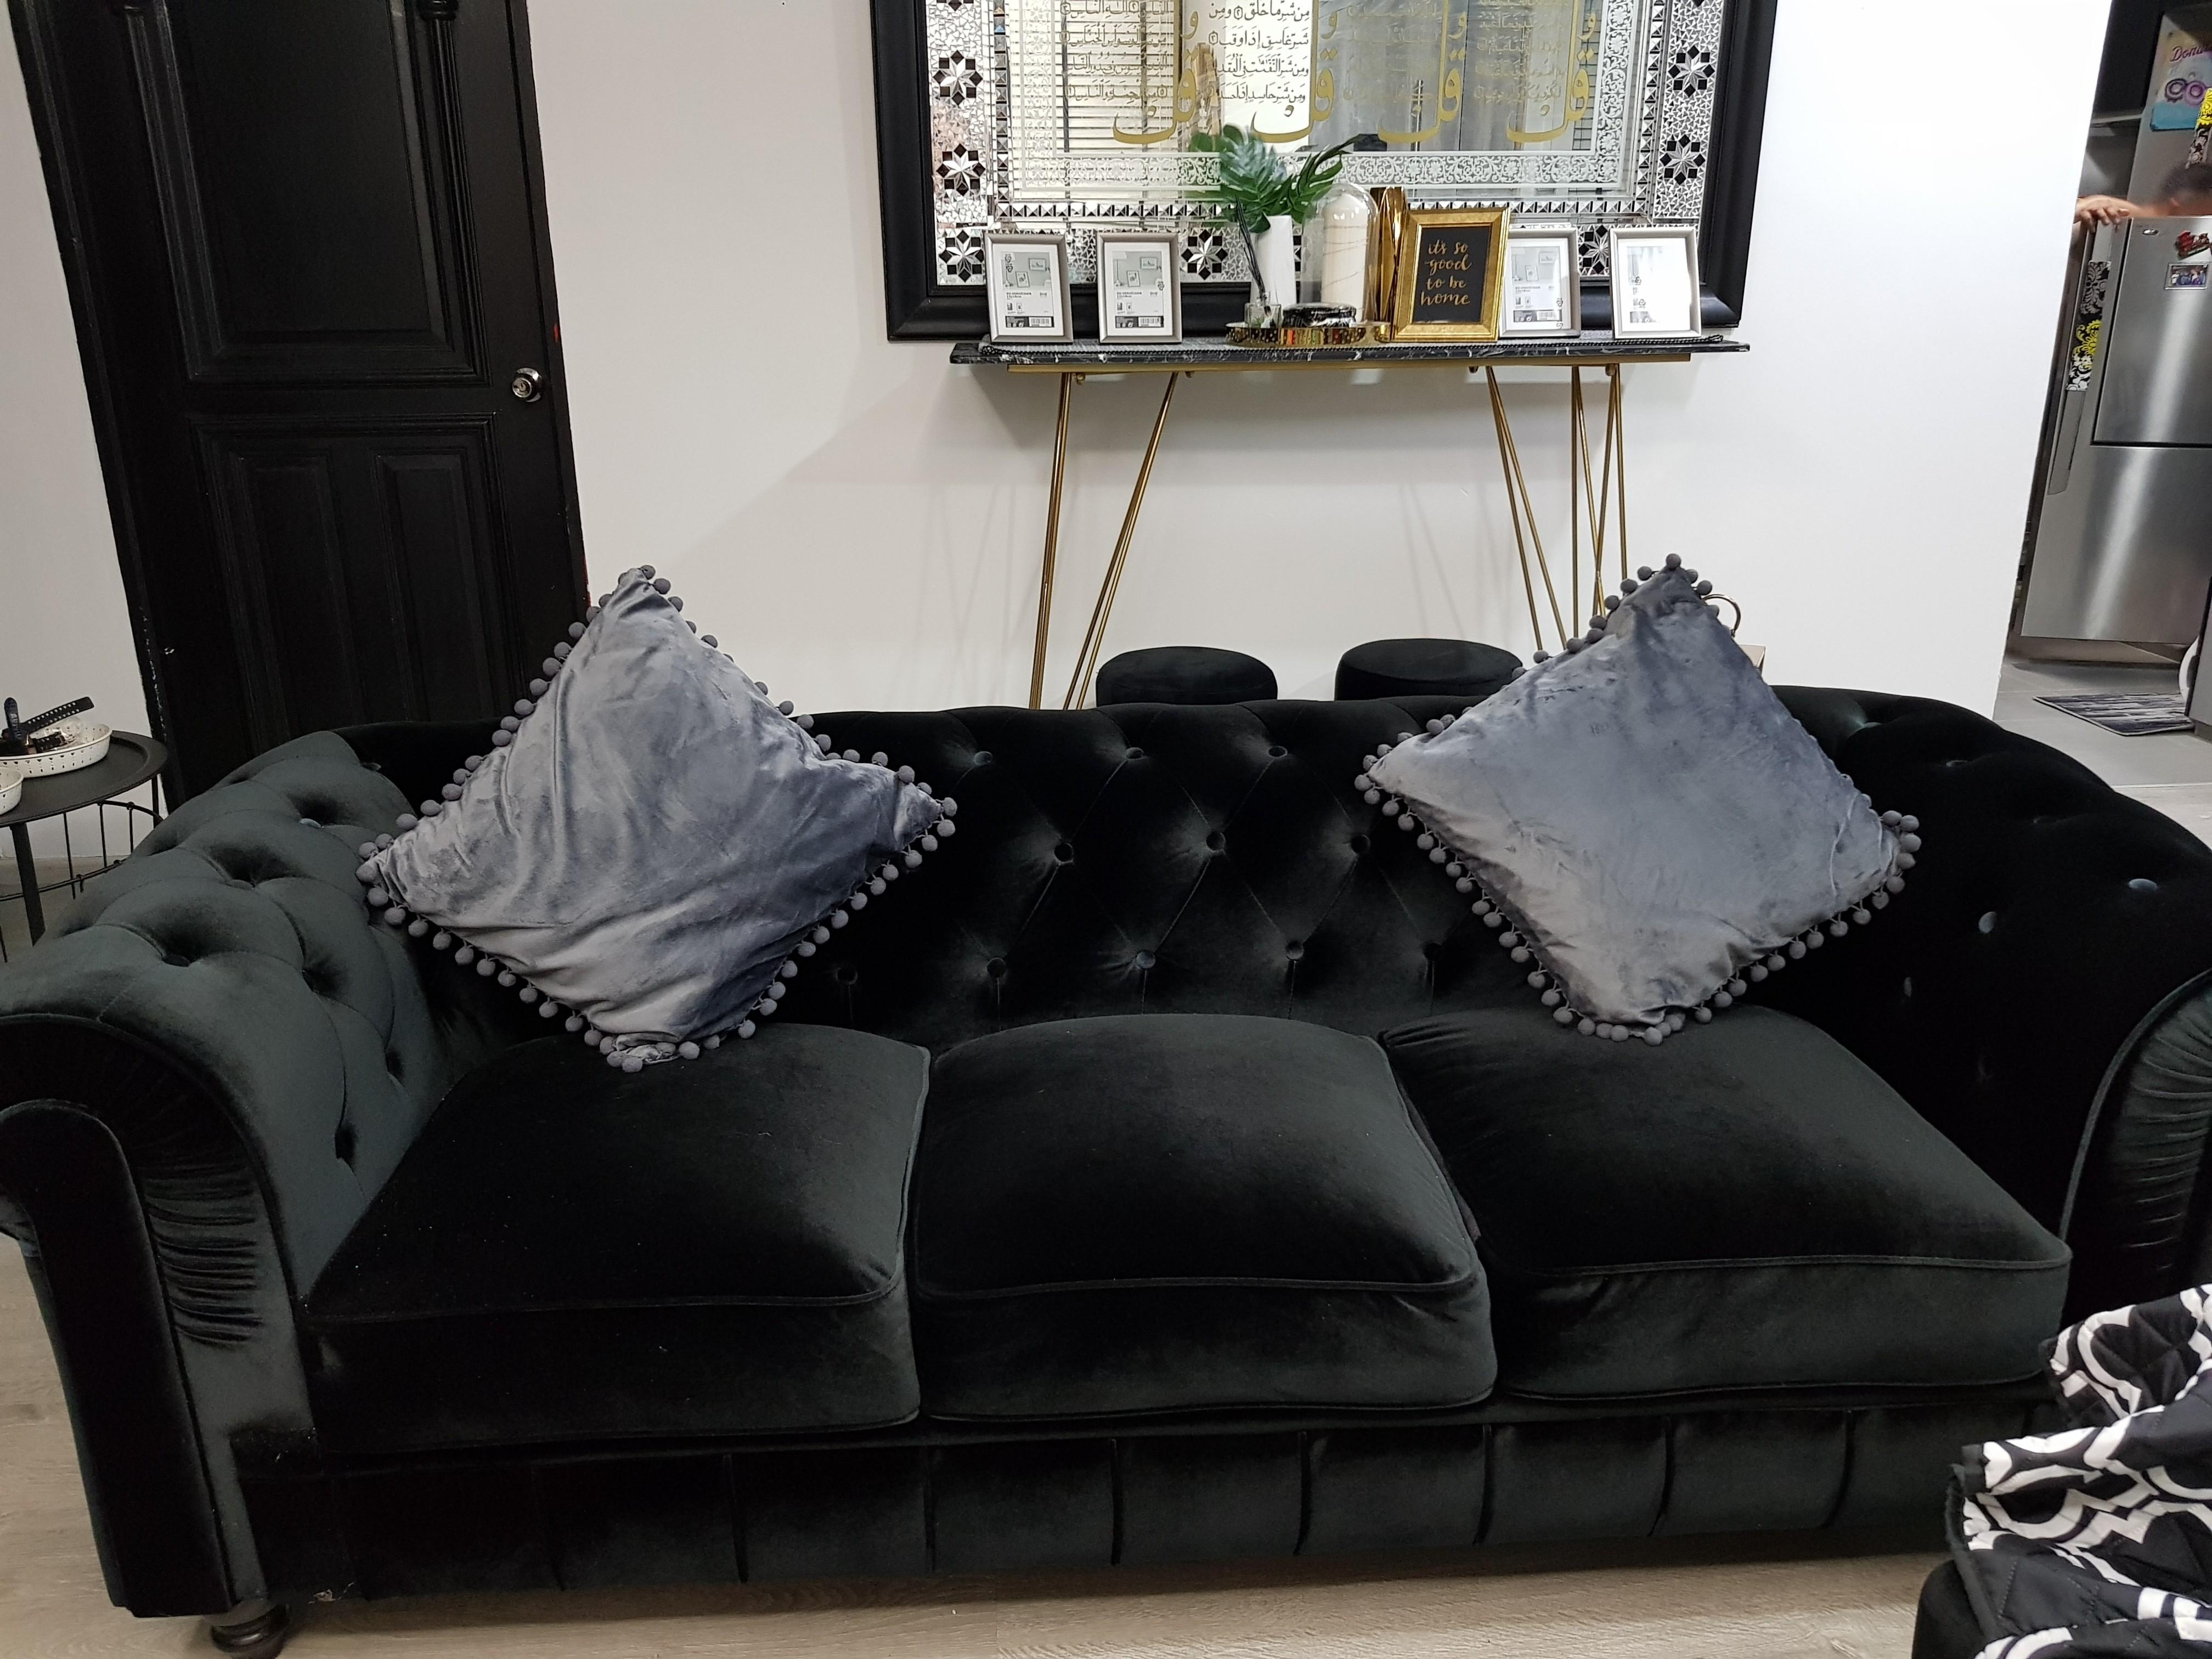 Black velvet Chesterfield sofa, Furniture, Sofas on Carousell